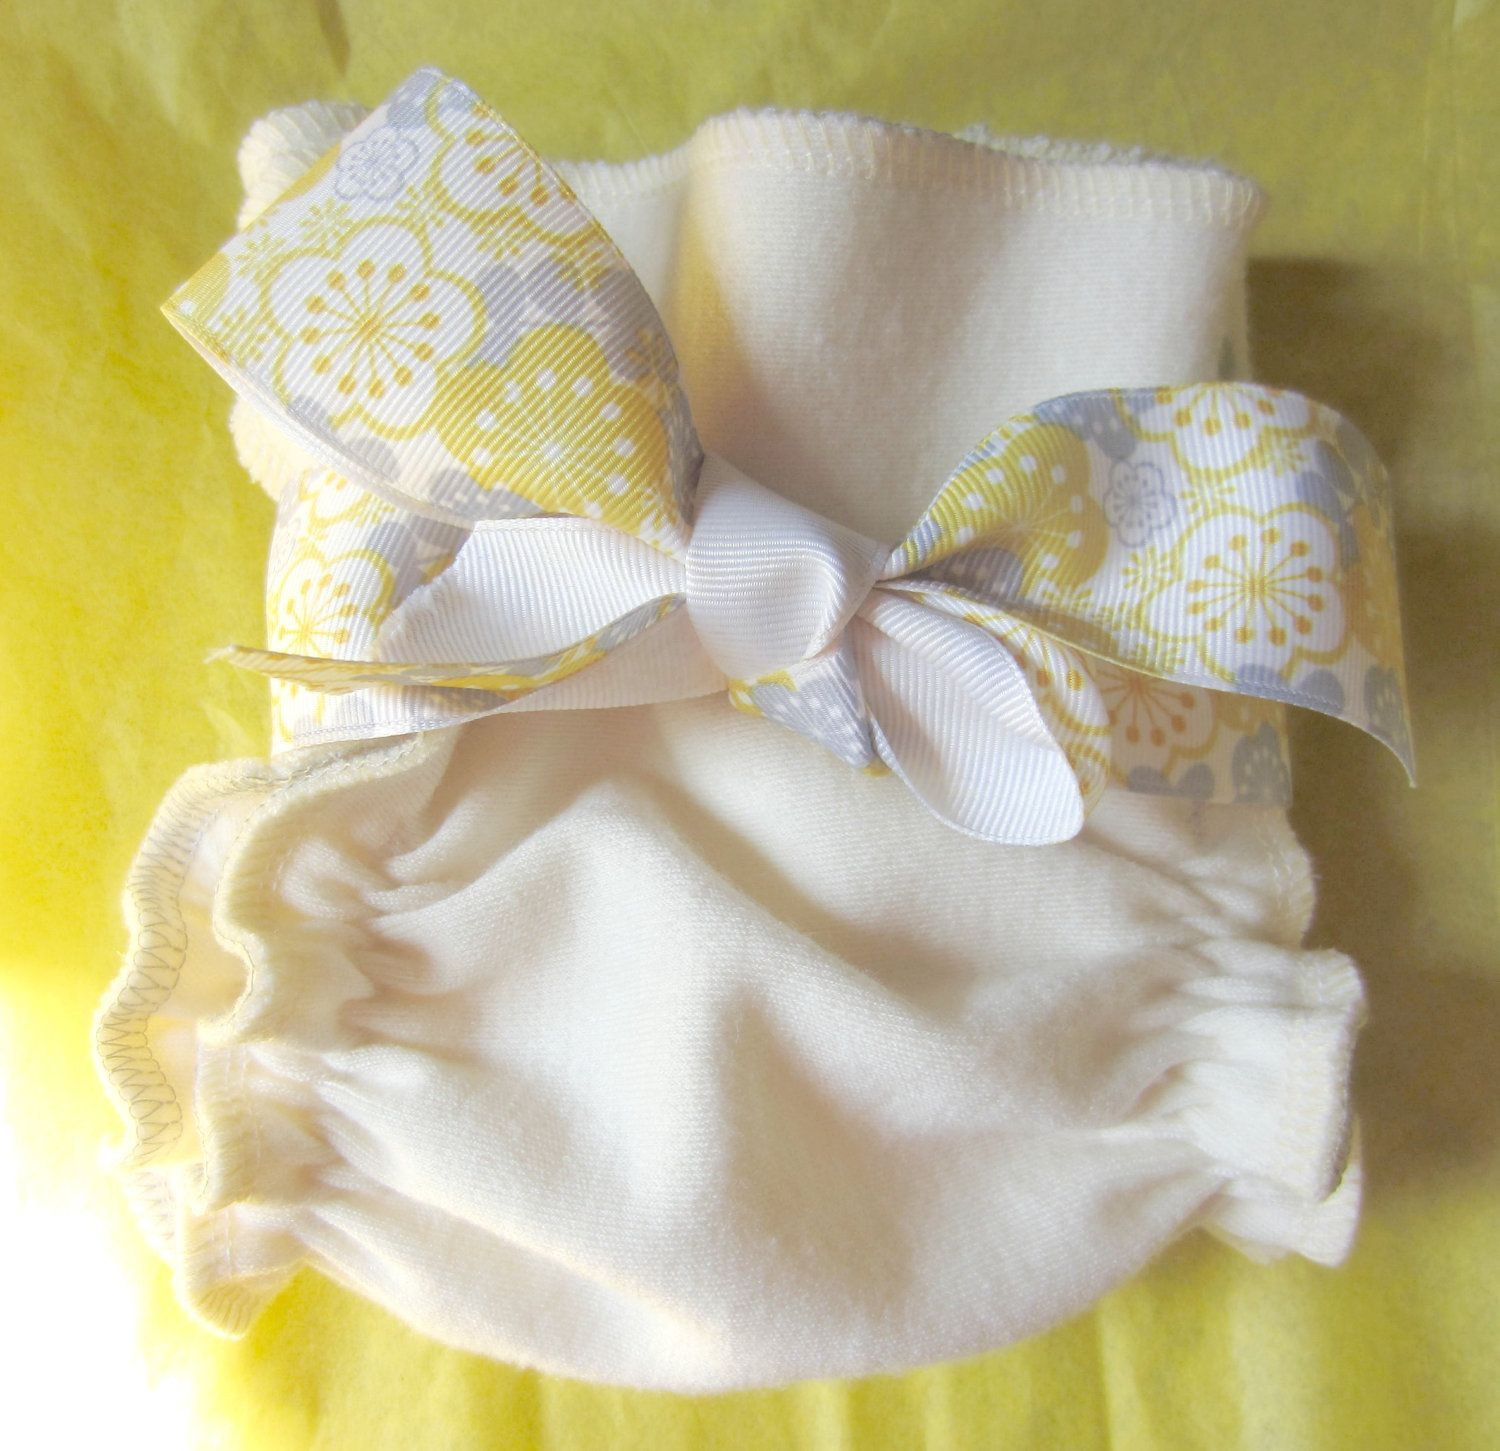 Nighttime Diaper Absorbency Test - All About Cloth Diapers